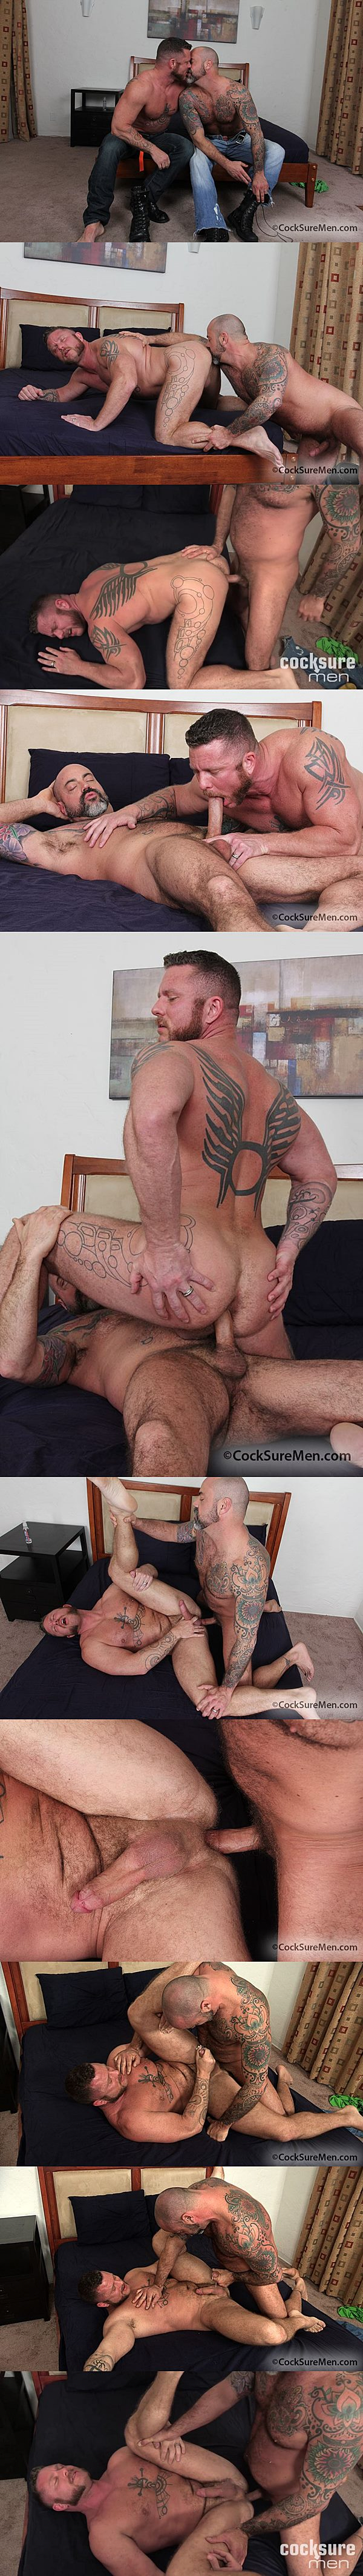 Scotty Rage barebacks Charlie Harding before he fucks the cum out of Charlie and breeds Charlie's muscle ass at Cocksuremen 02